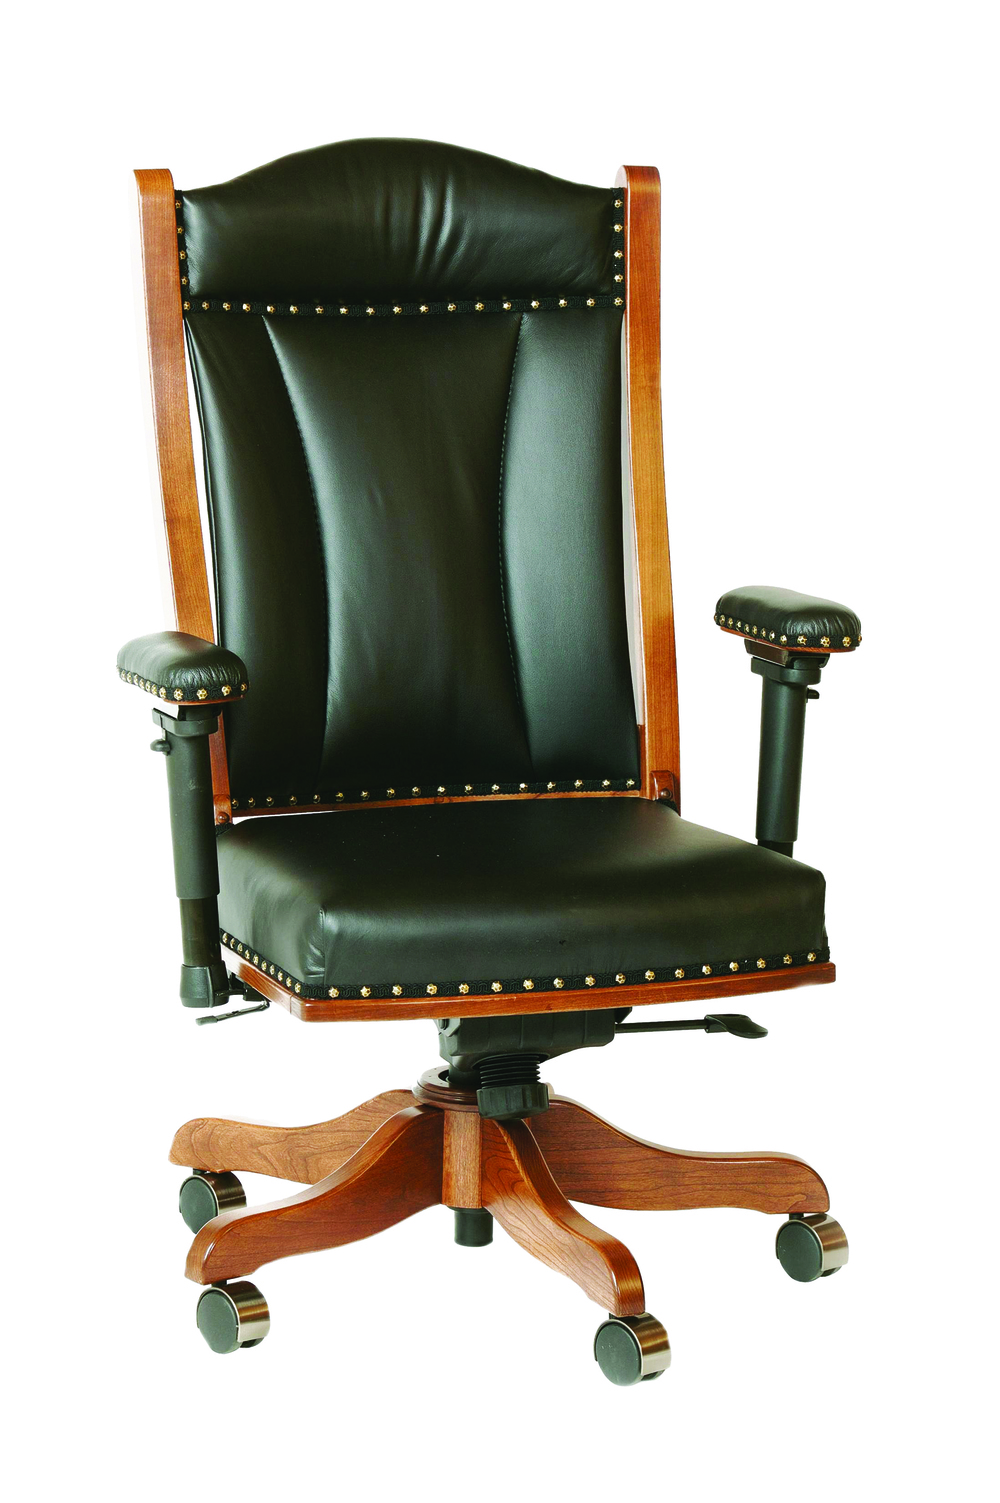 Desk Chair with gas lift